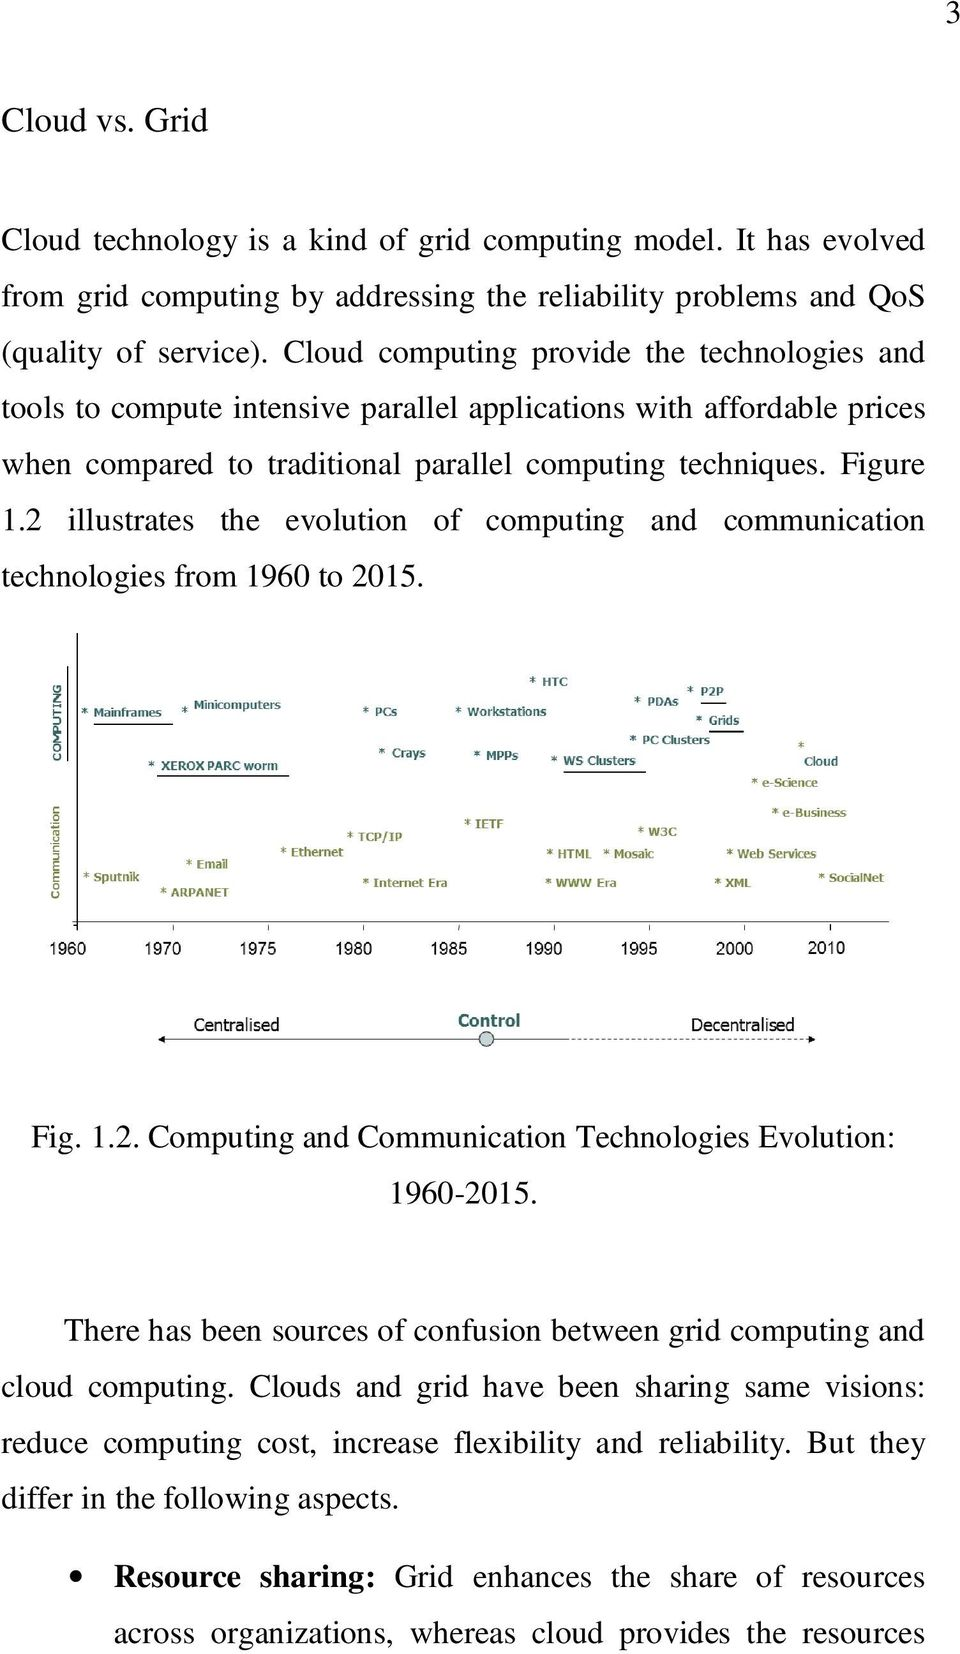 2 illustrates the evolution of computing and communication technologies from 1960 to 2015. Fig. 1.2. Computing and Communication Technologies Evolution: 1960-2015.